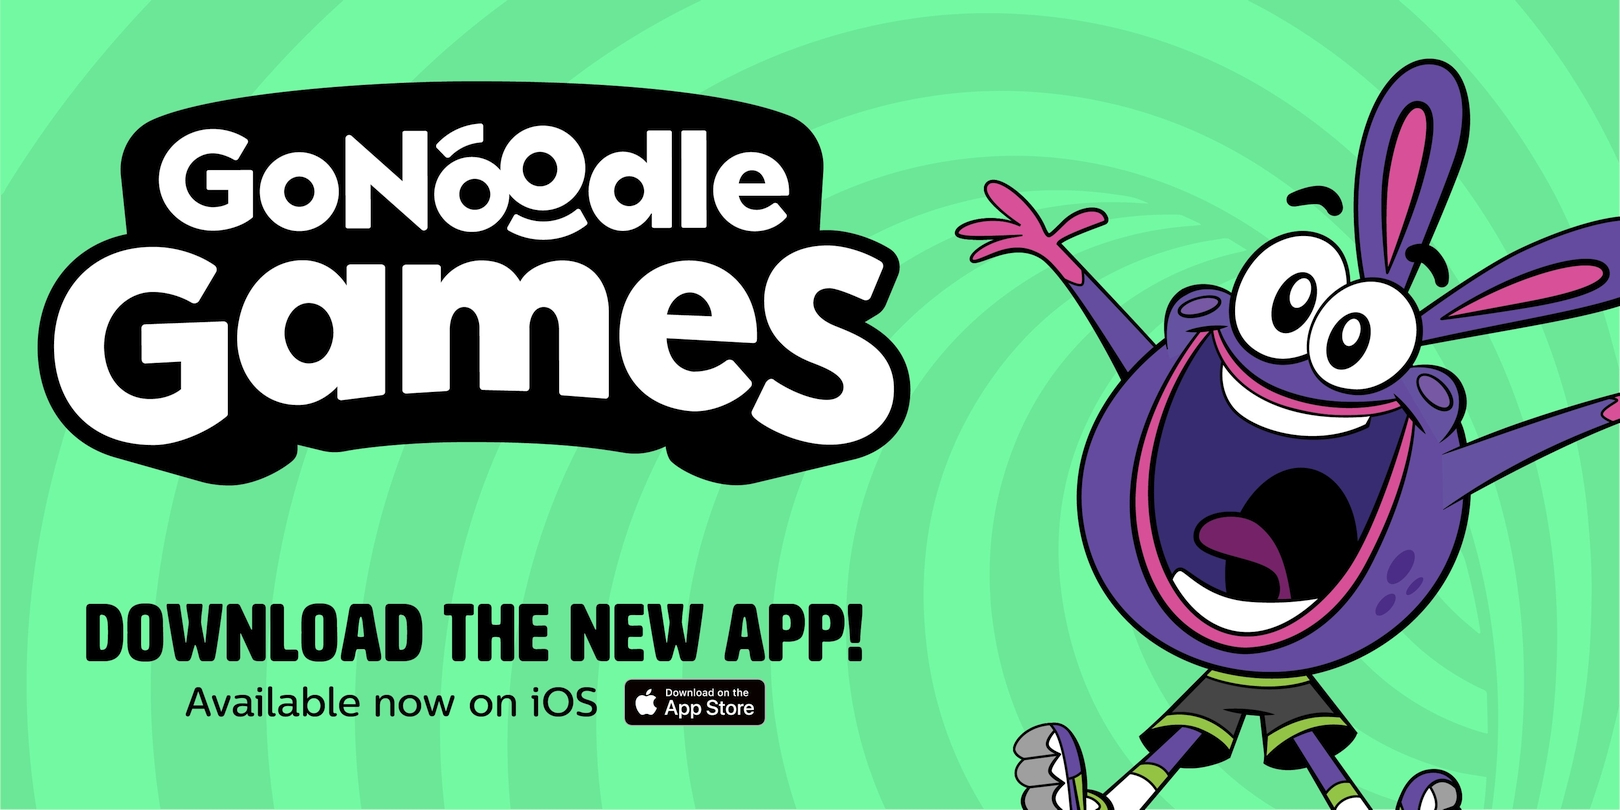 GoNoodle Games Is A New Safe App Option For Kids Available Now On The App Store